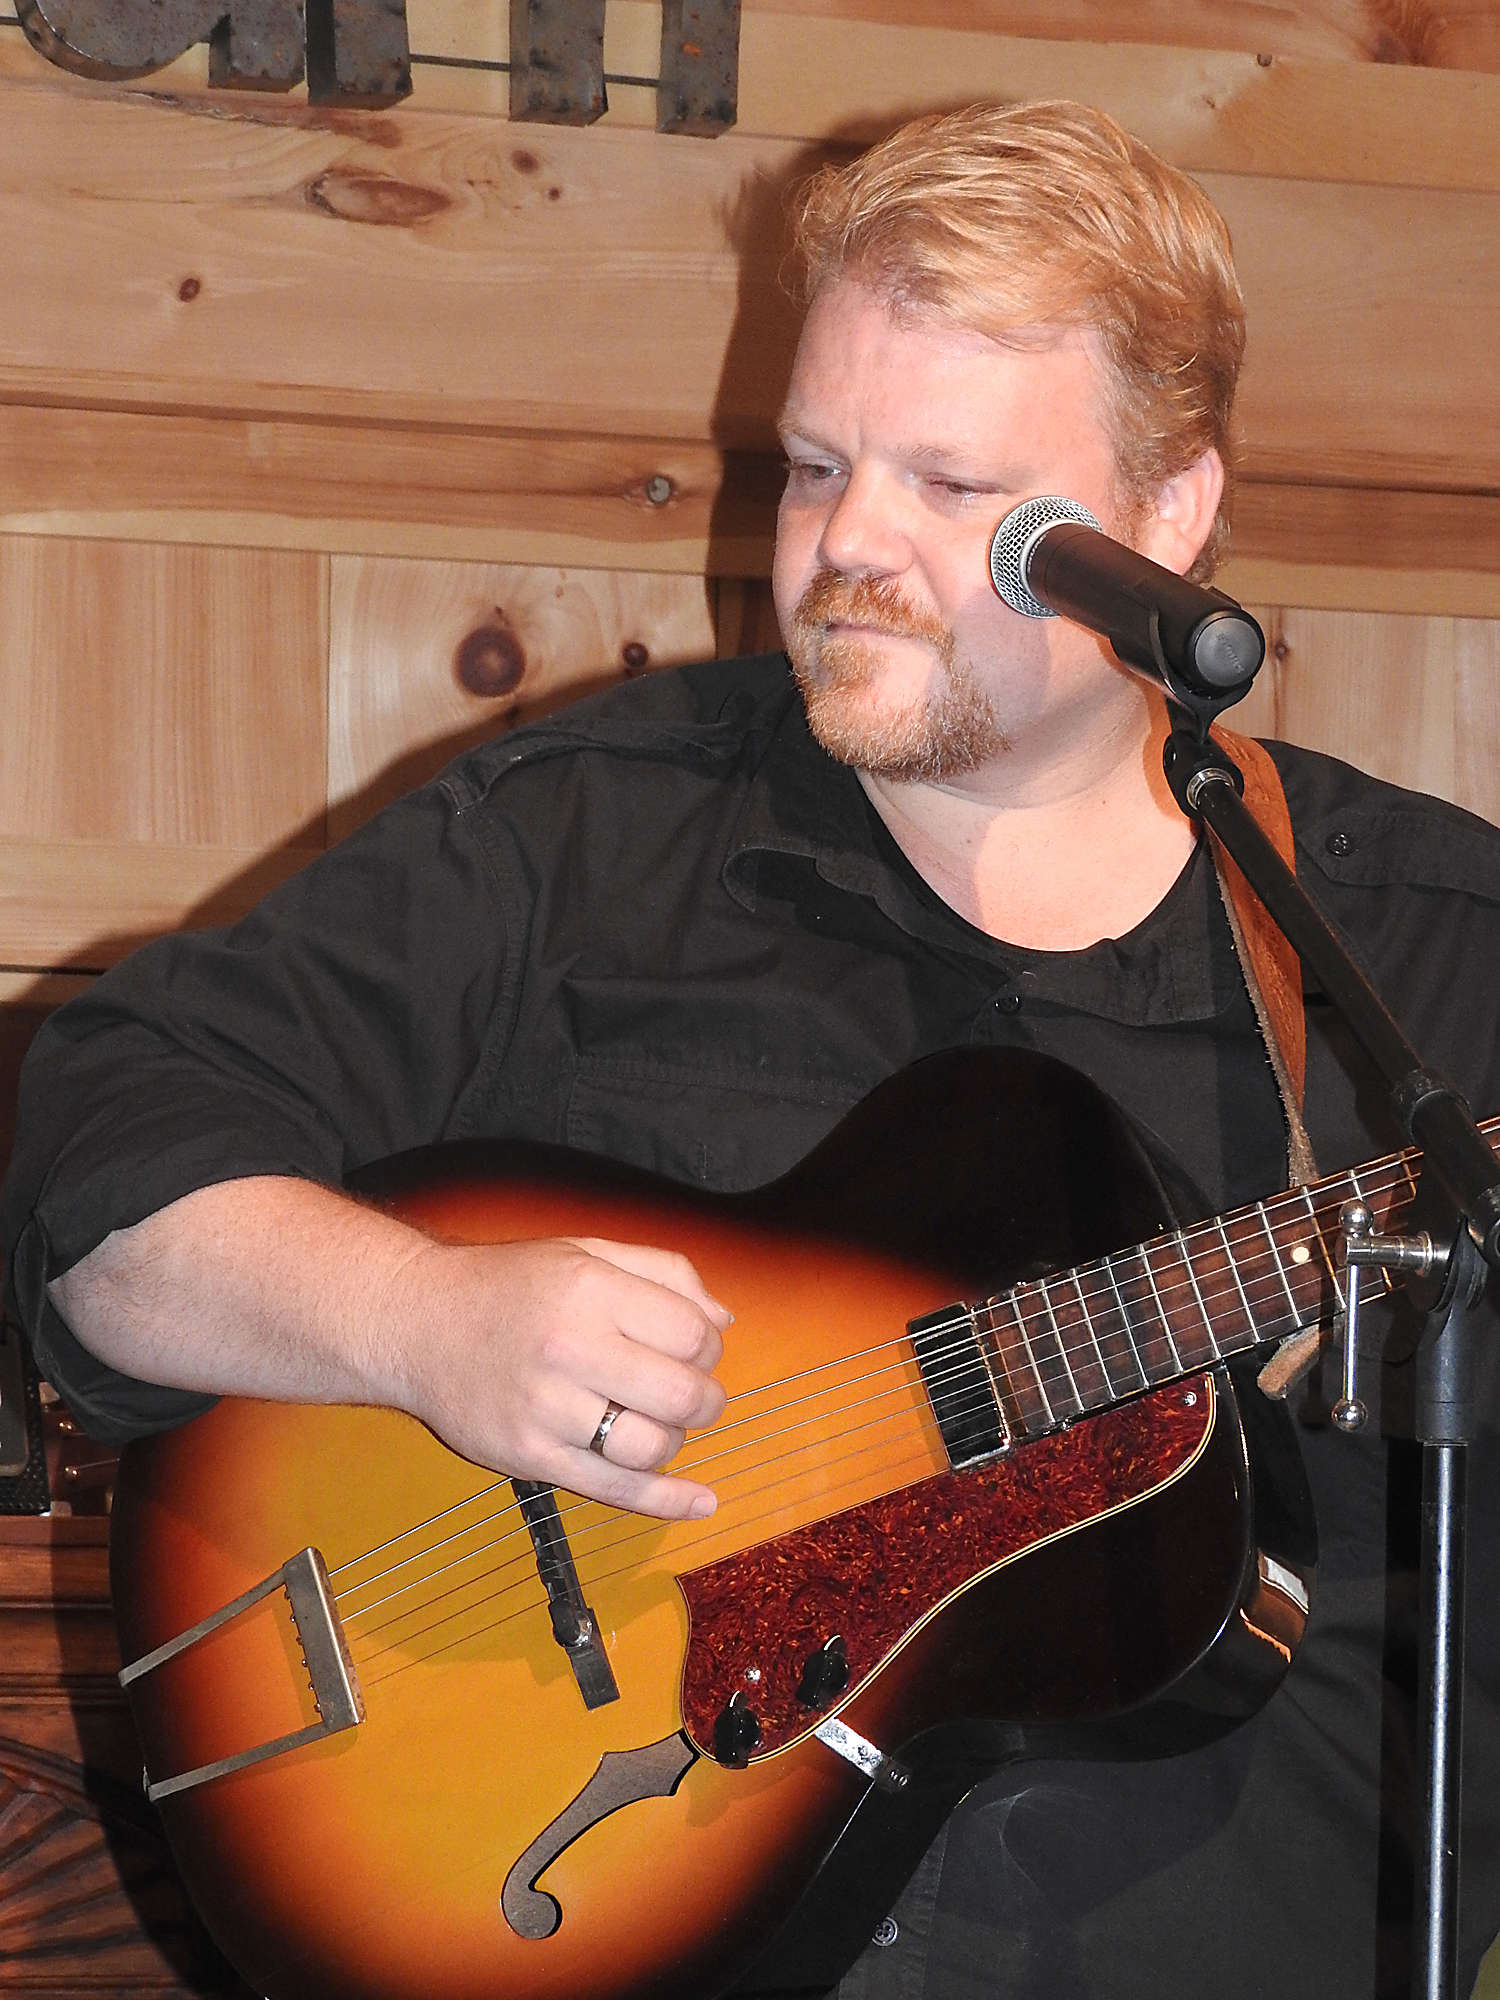 Chris Wilson hosts a house concert at The Barn once a month. Photo by Karen Fien